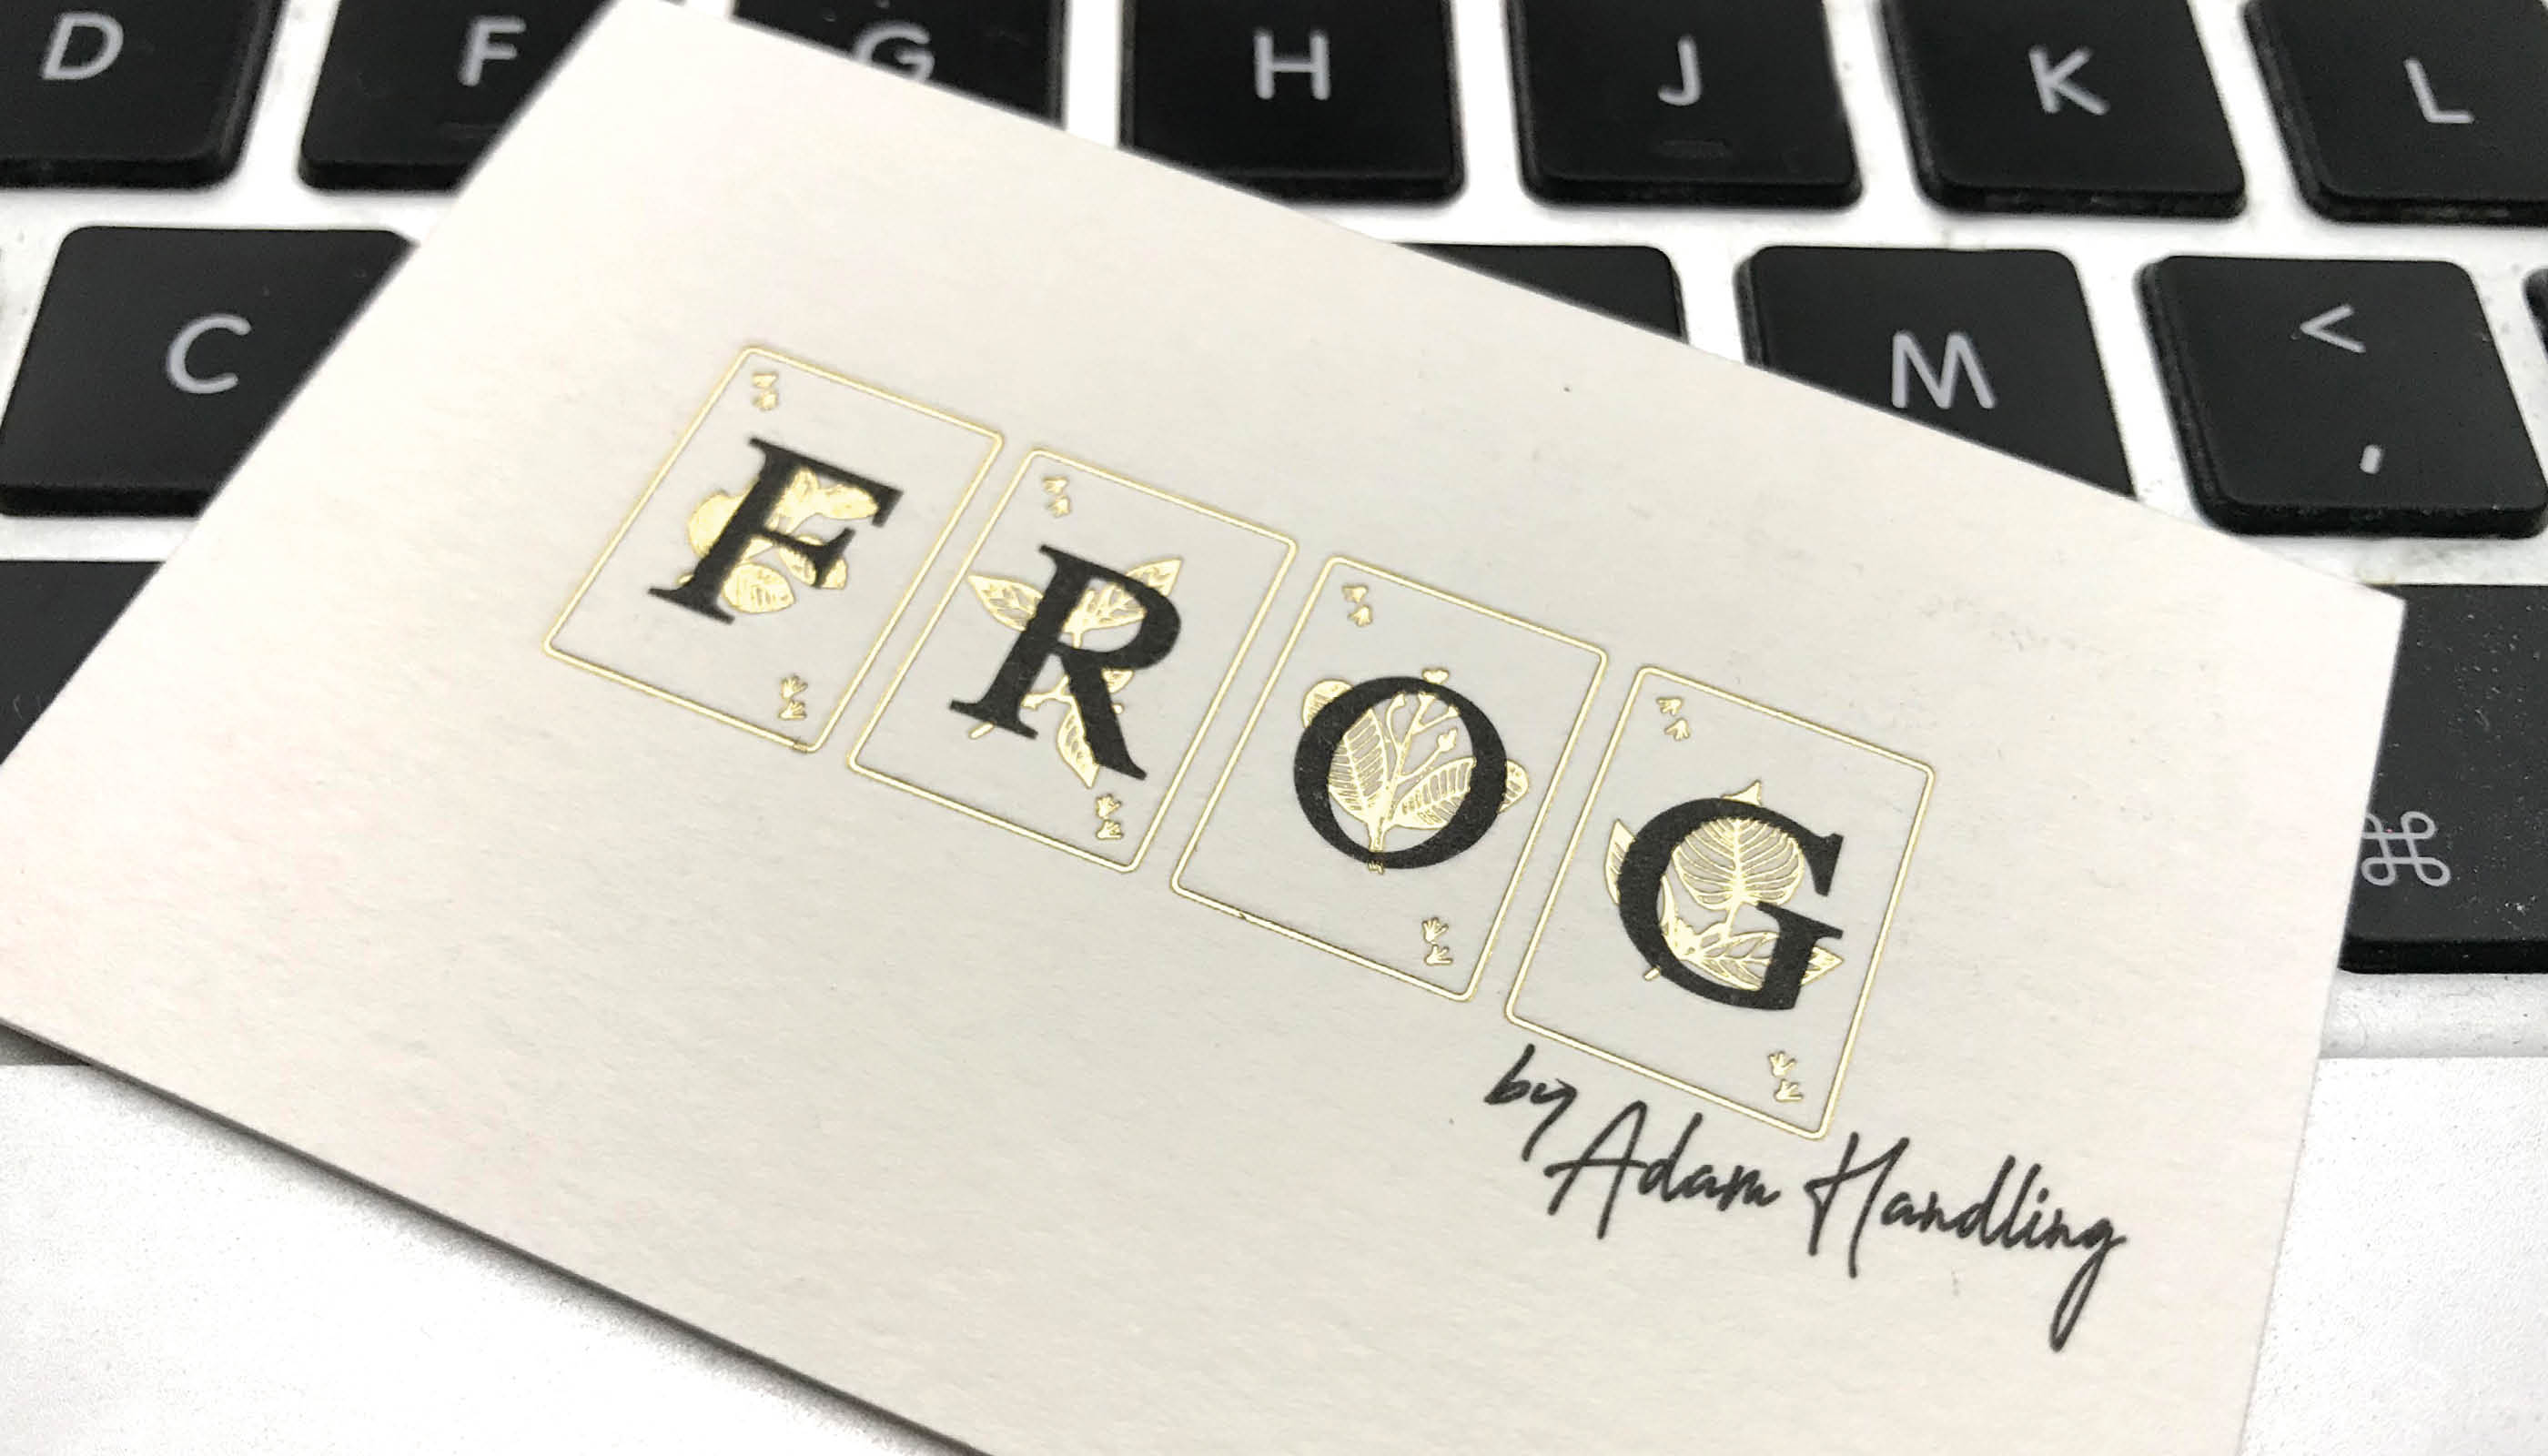 frog_06